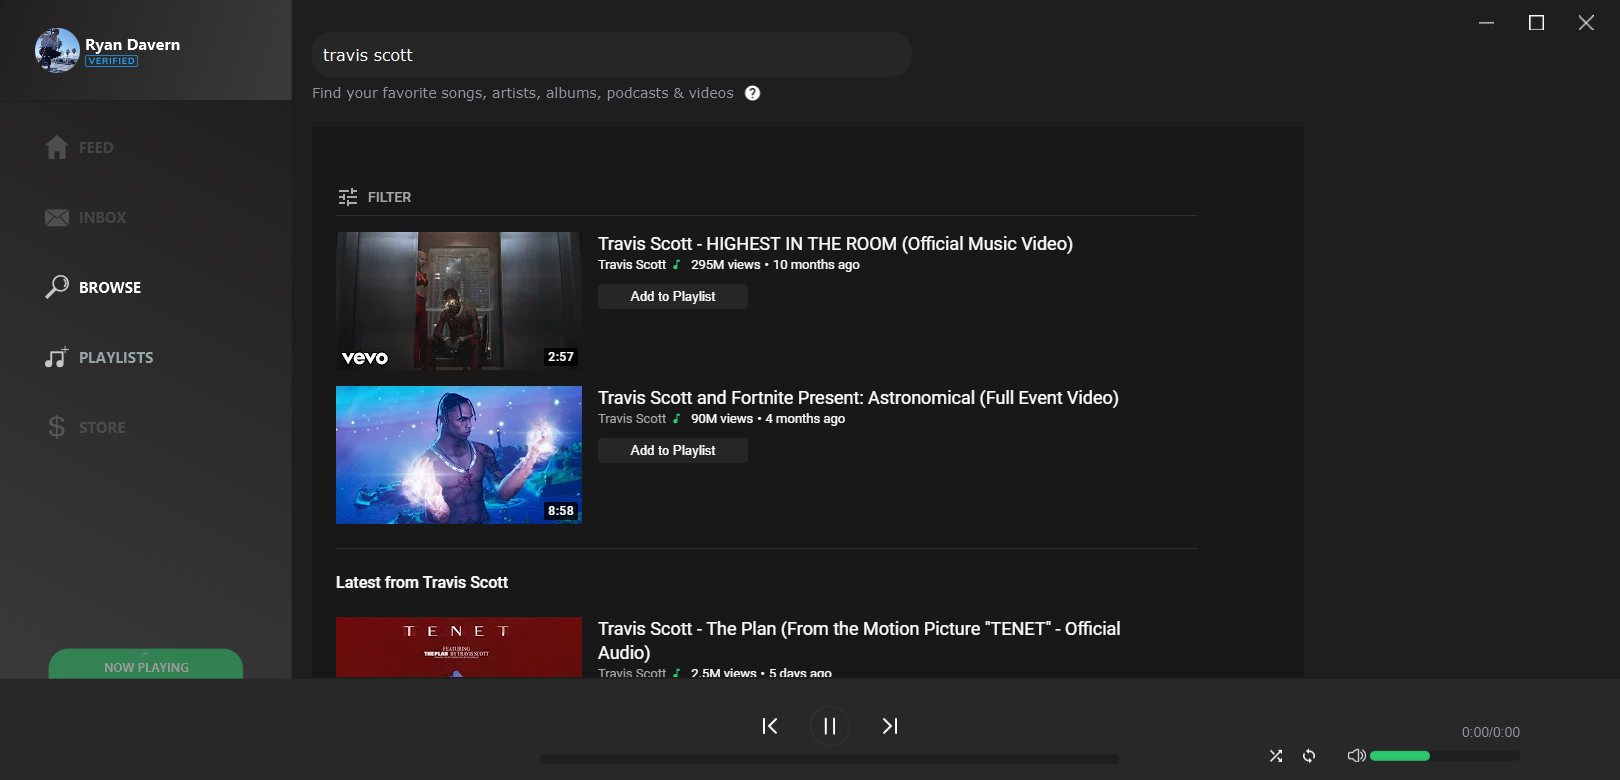 Browse Page lets you search for music, import playlists & view artists.